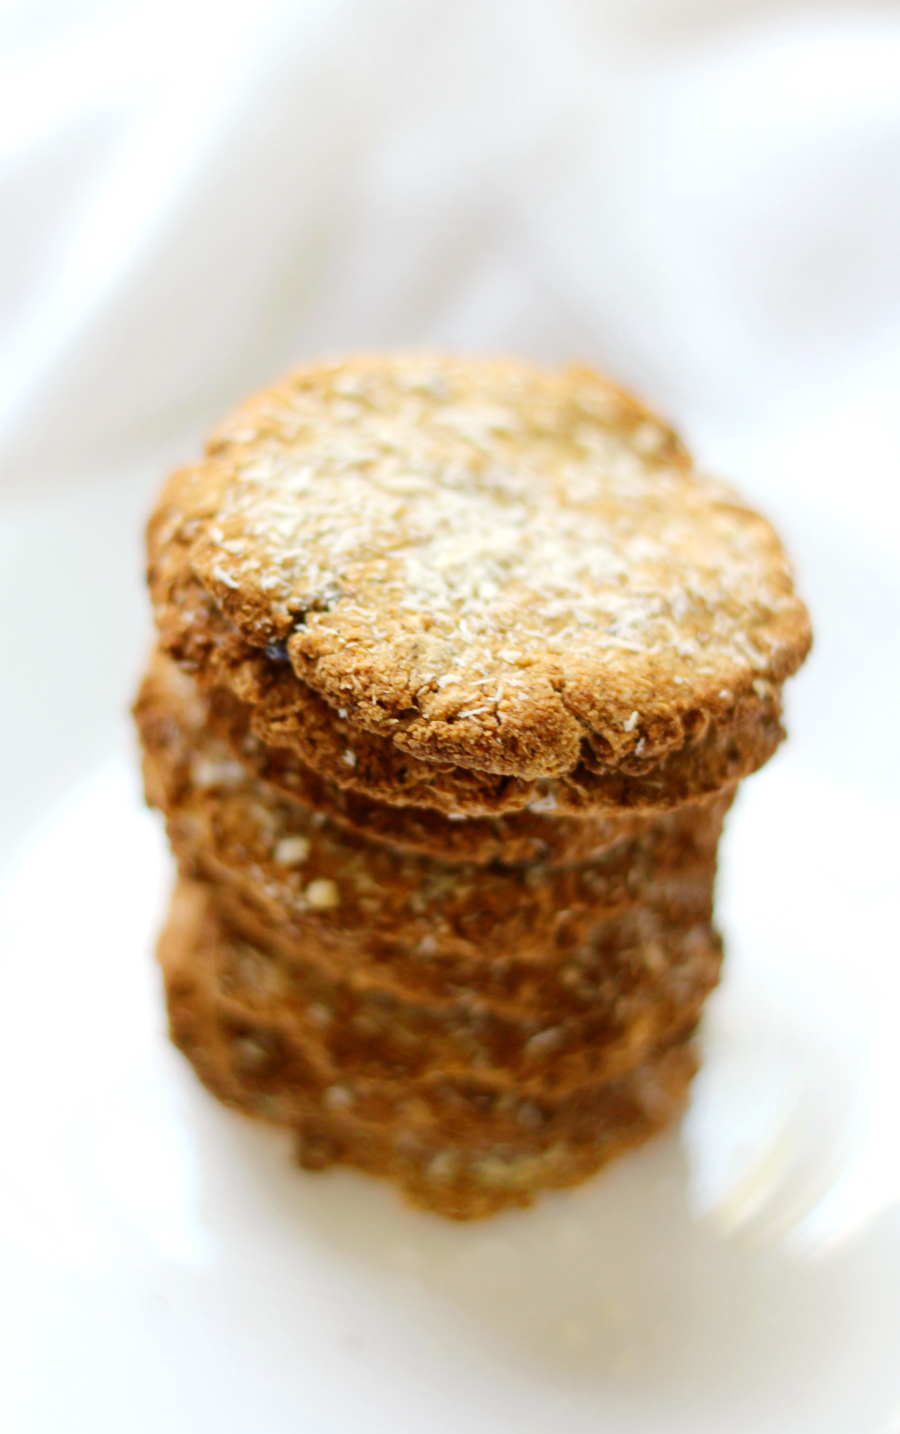 Lavender Coconut Tigernut Flour Cookies (Gluten-Free, Vegan, Paleo) | Strength and Sunshine @RebeccaGF666 Sweet, nutty, and earthy, these Lavender Coconut Tigernut Flour Cookies are an alluring and delicious treat to bake! Gluten-free, vegan, paleo, and allergy-free, whether you enjoy them as a snack with afternoon tea or a healthy dessert, this recipe is bound to be a new favorite!